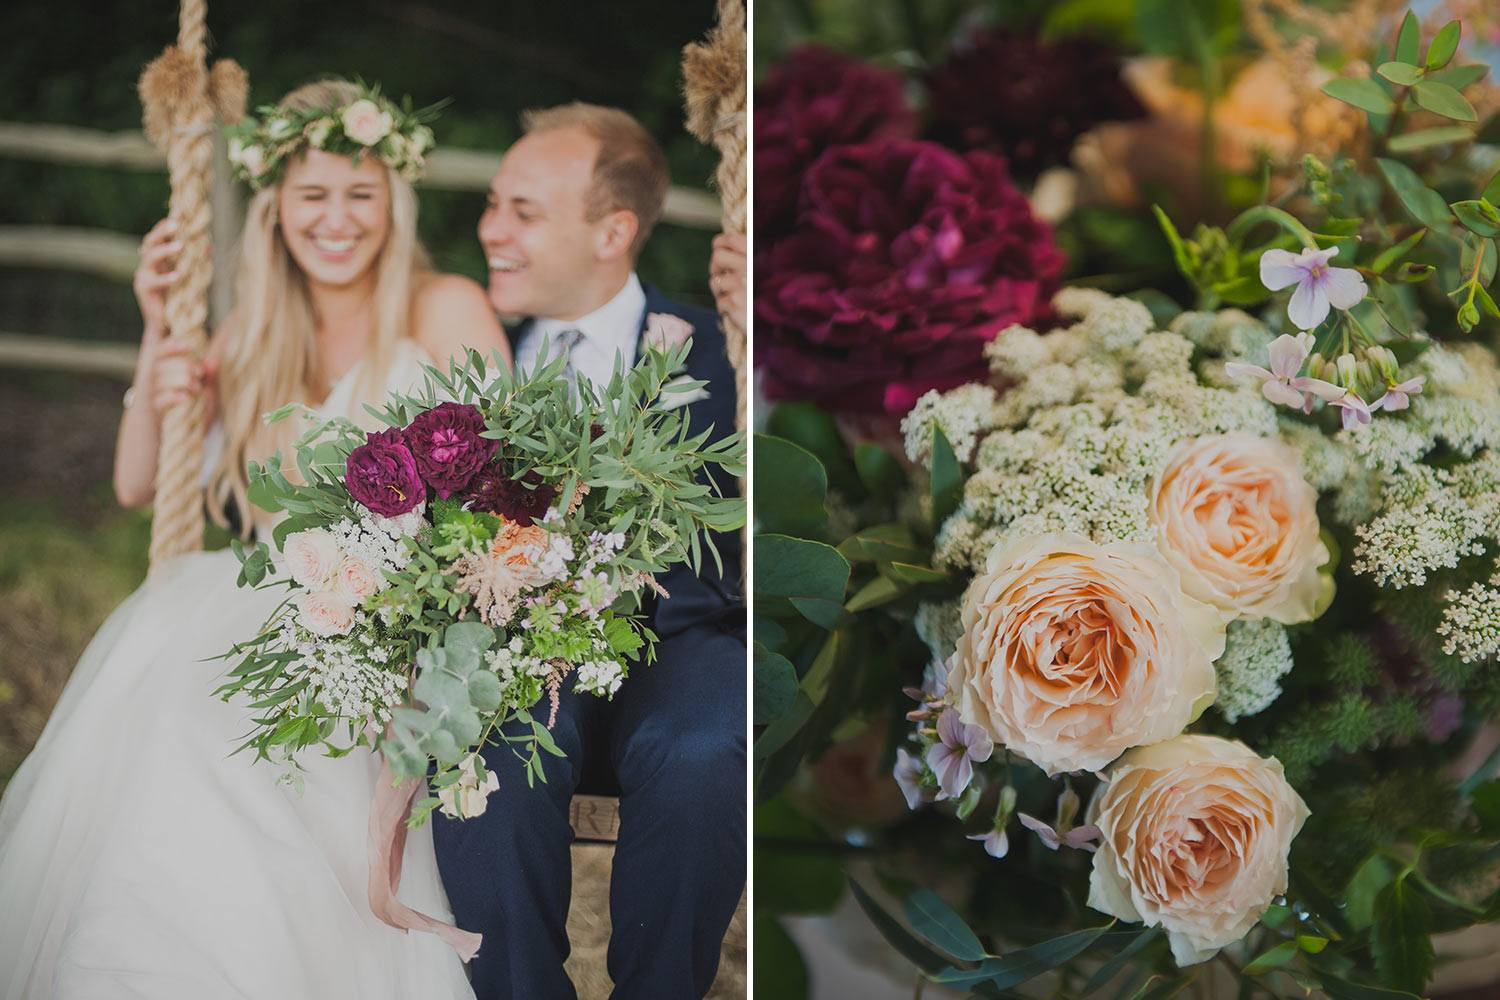 Bride and groom on rope swing and bouquet with roses